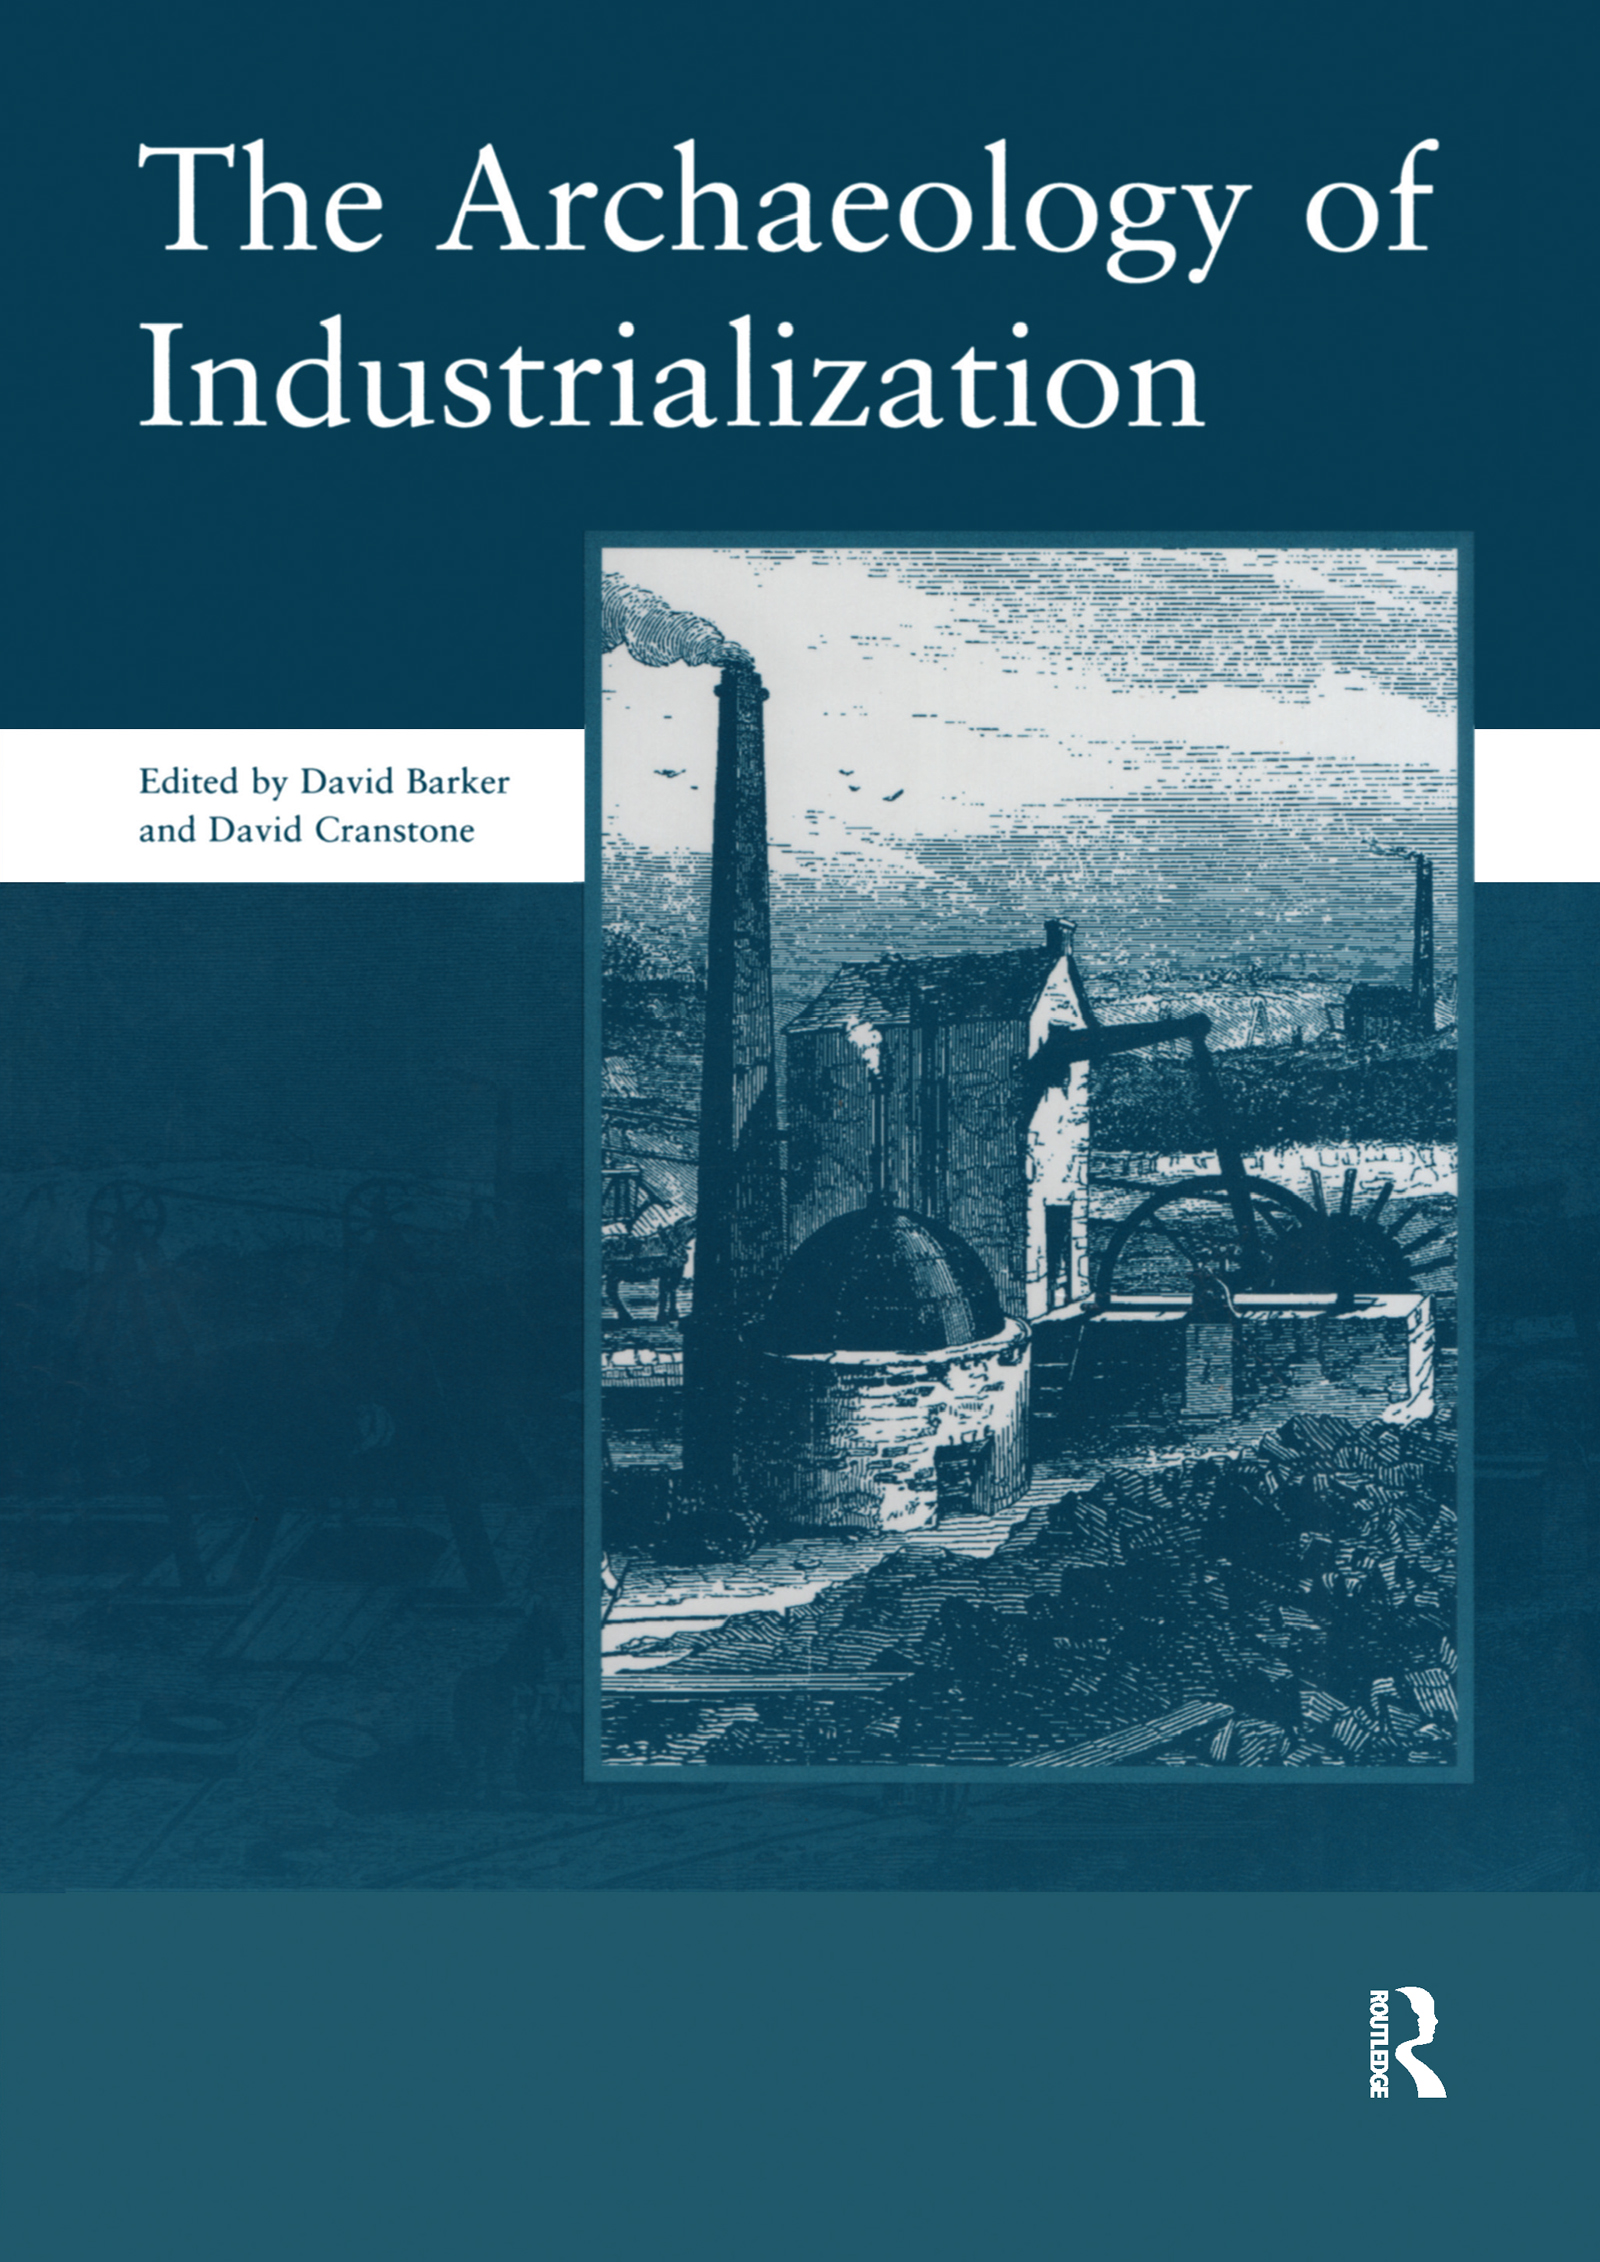 The Archaeology of Industrialization — New Directions